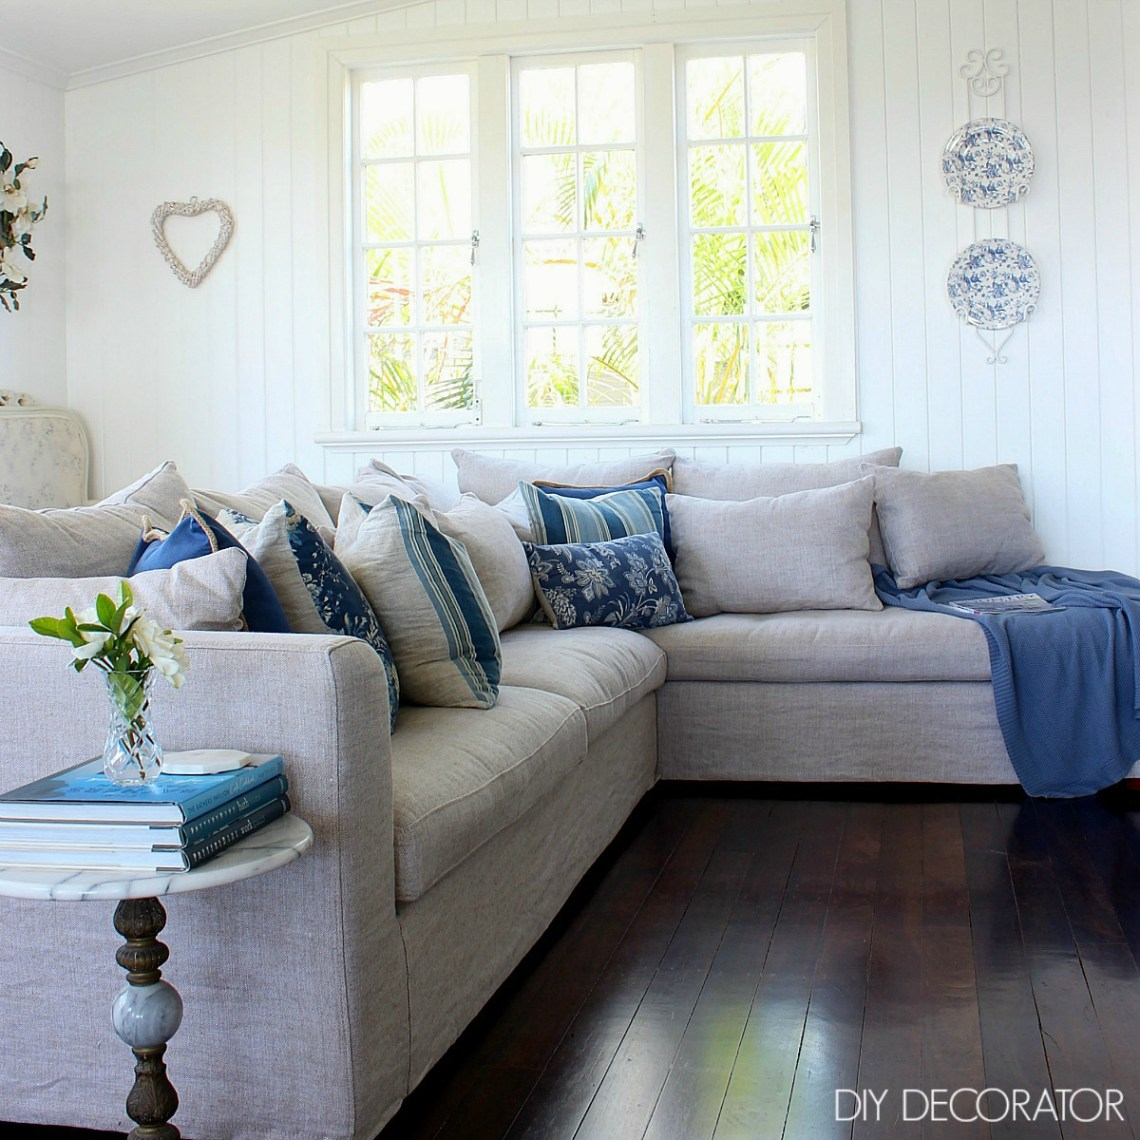 Blue decorative cushions on a linen slipcover modular sofa. A love hate relationship with cushions